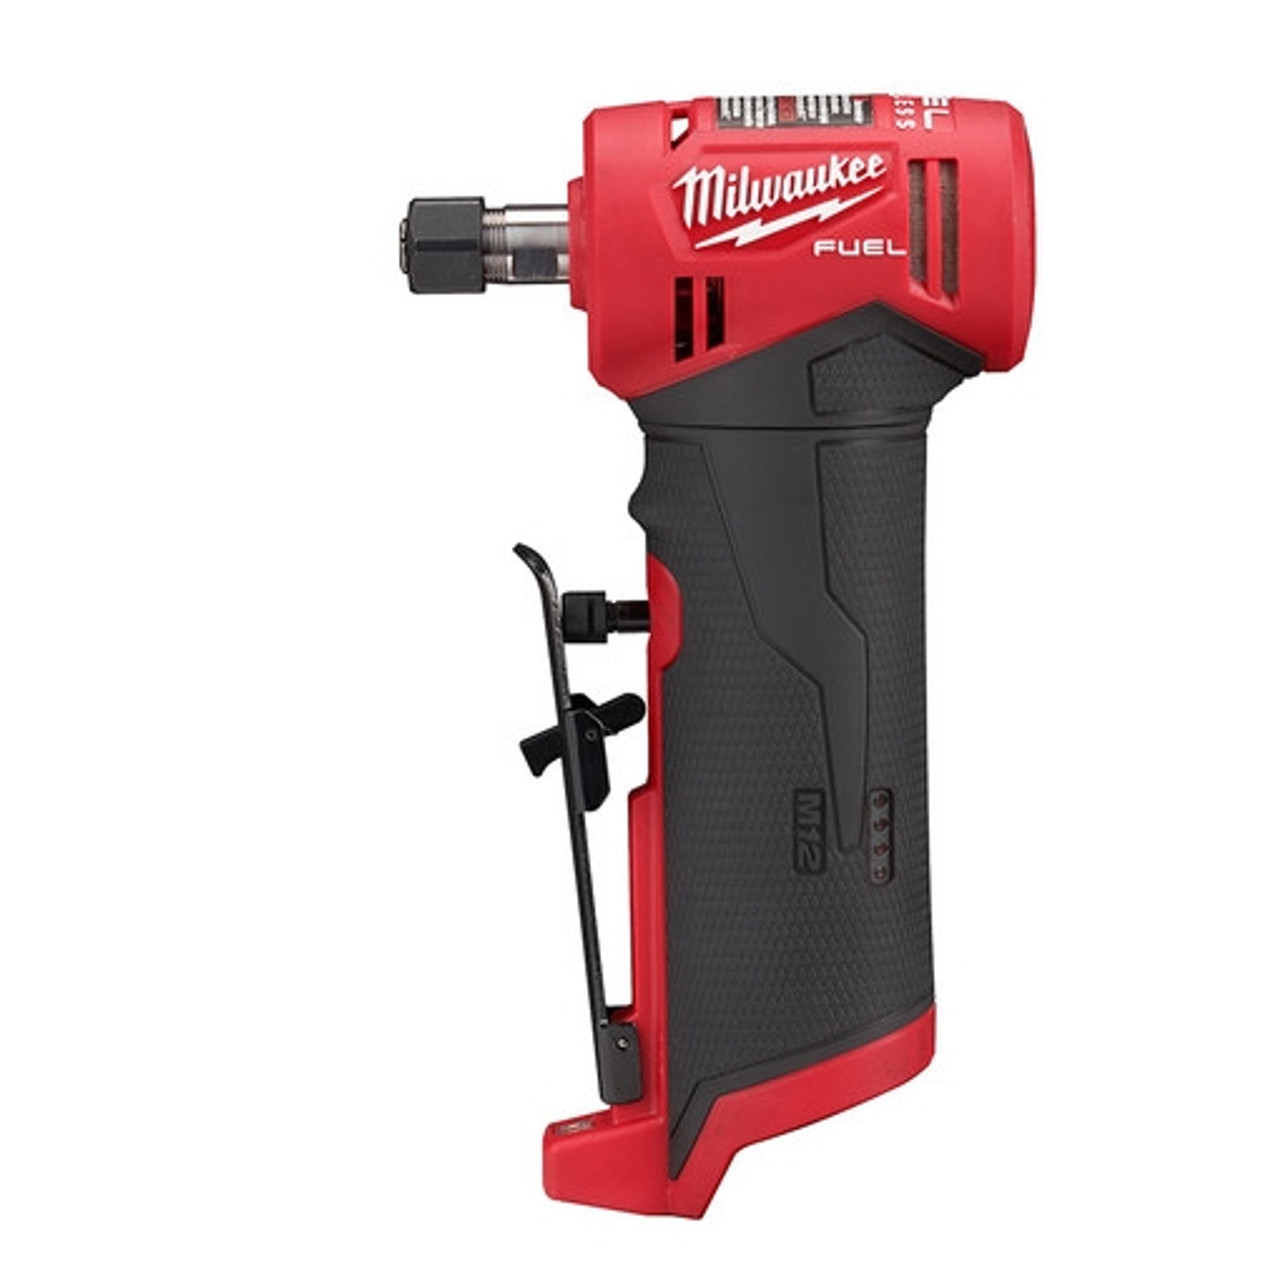 Milwaukee 2485-20 M12 FUEL 1/4 in. Right Angle Die Grinder